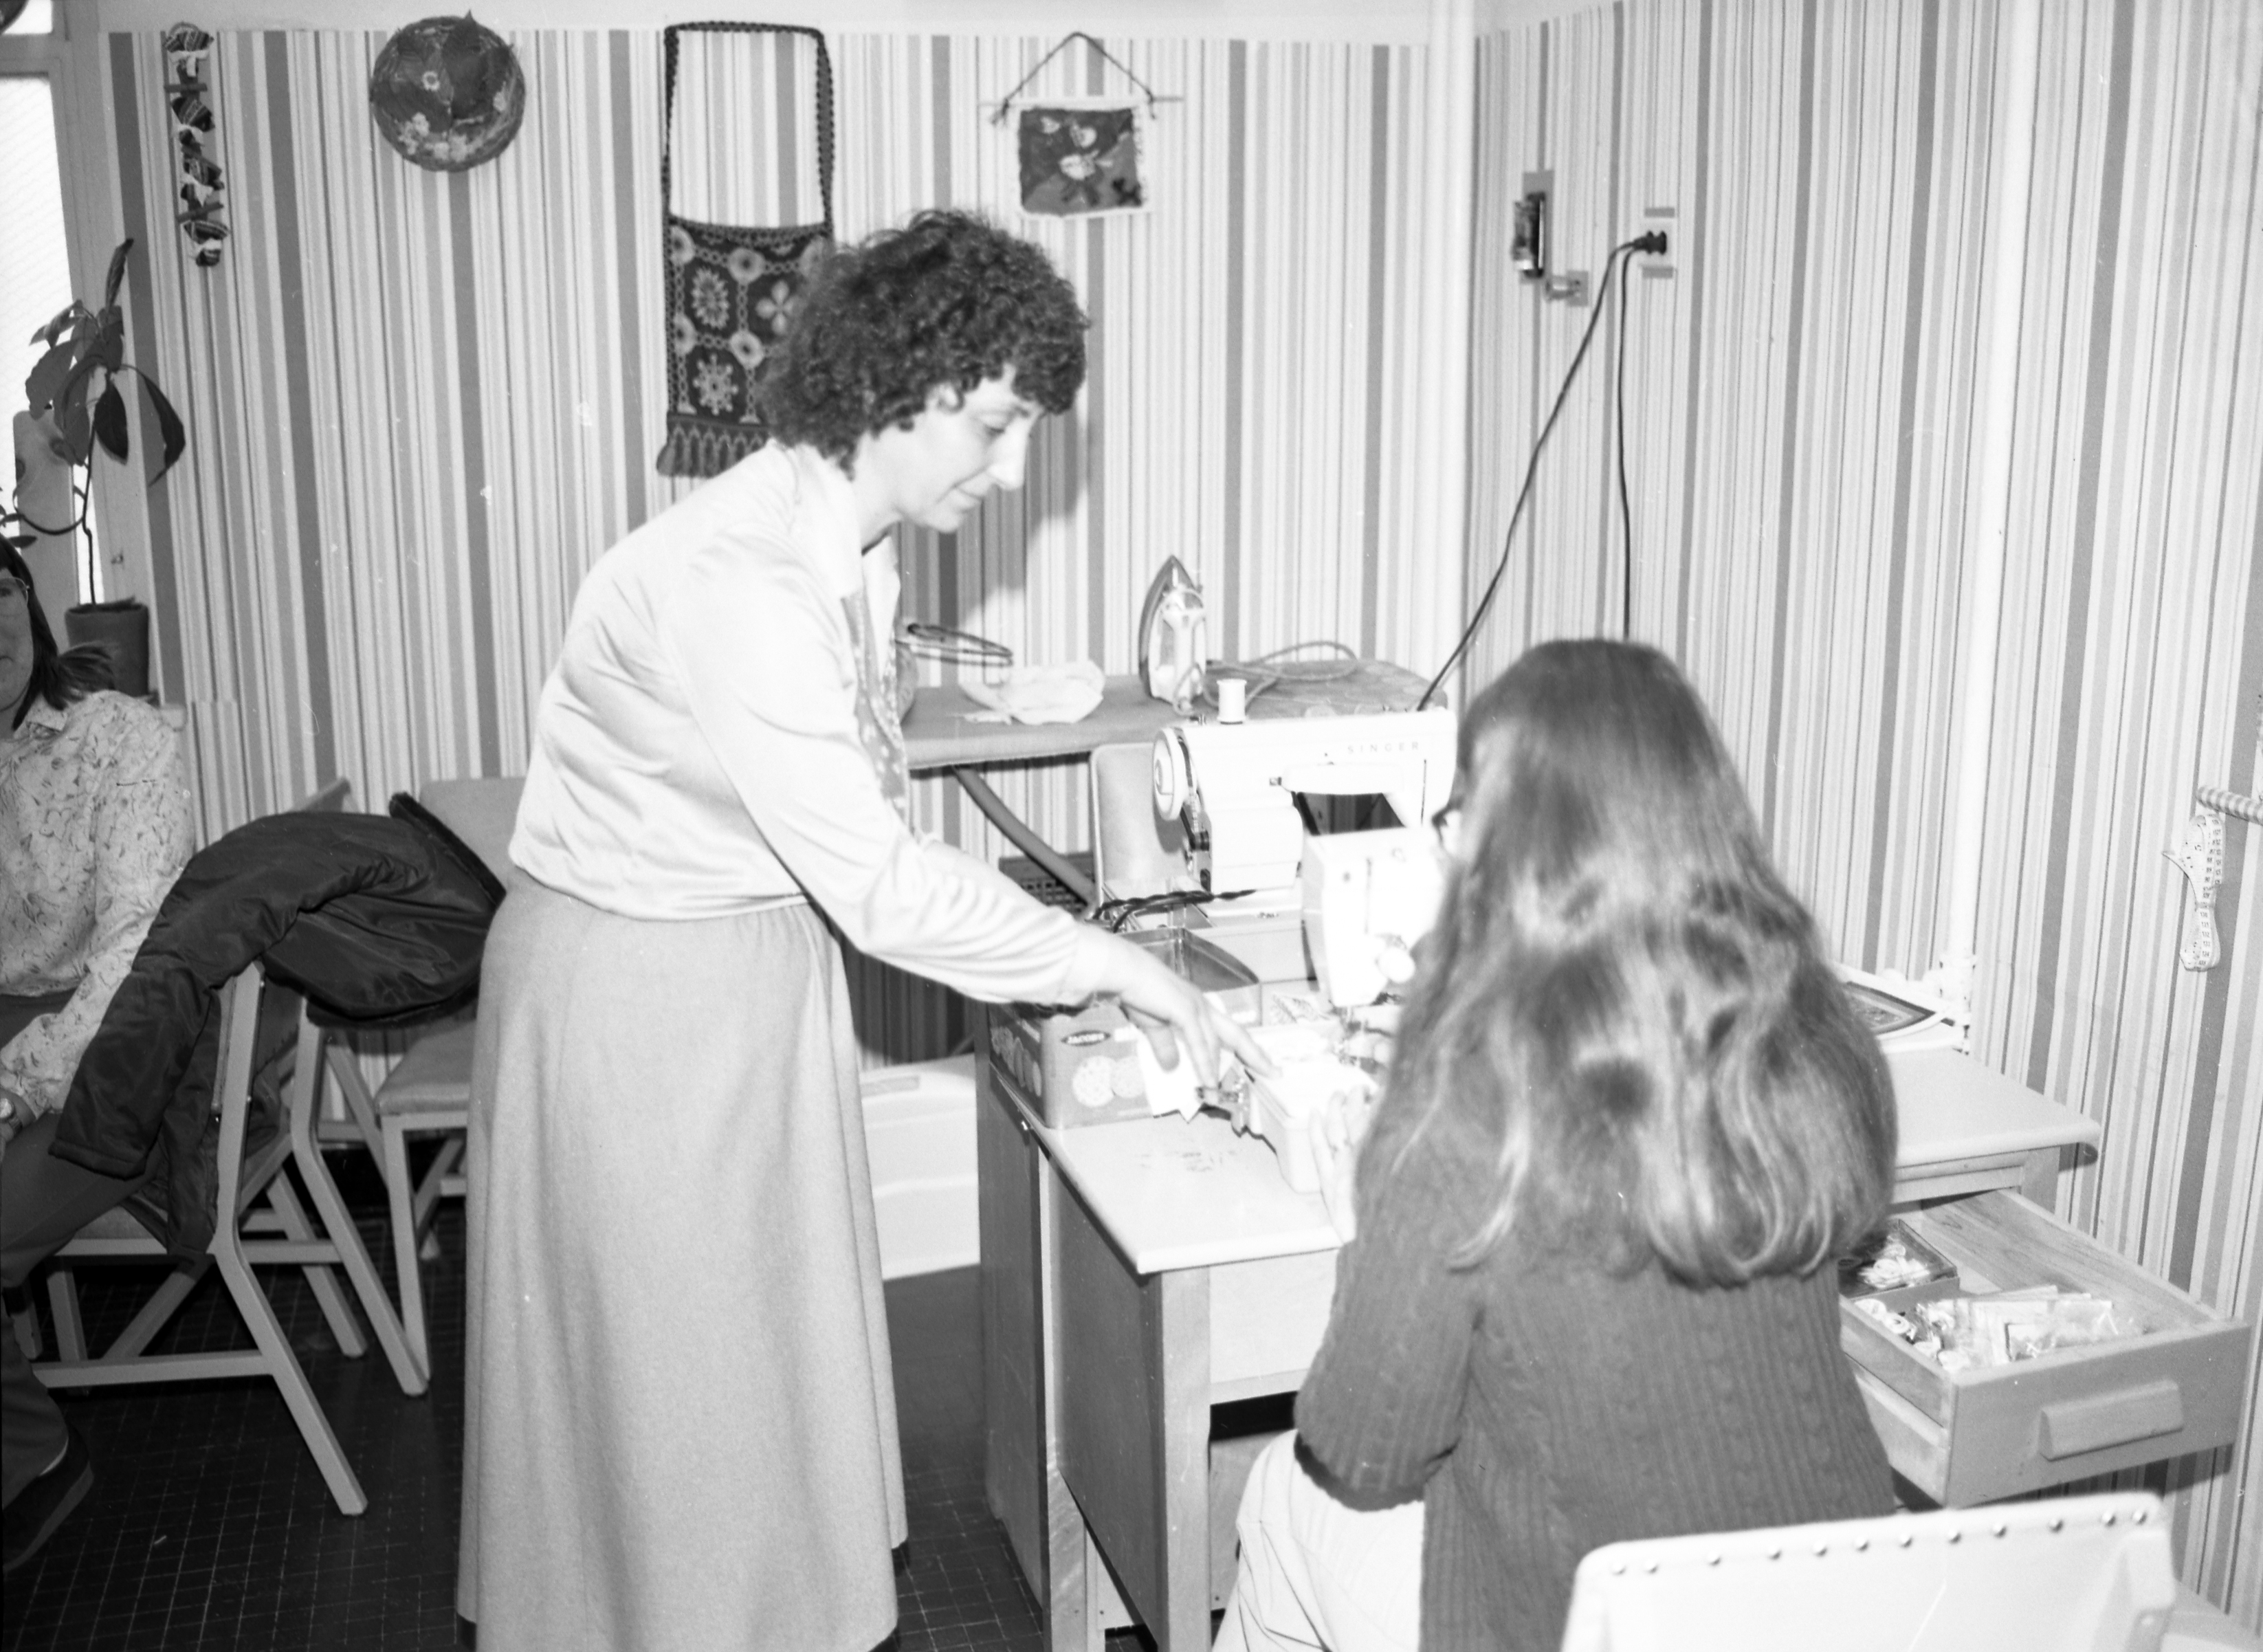 black and white photo circa 1970s of woman assisting/directing another woman at sewing maching